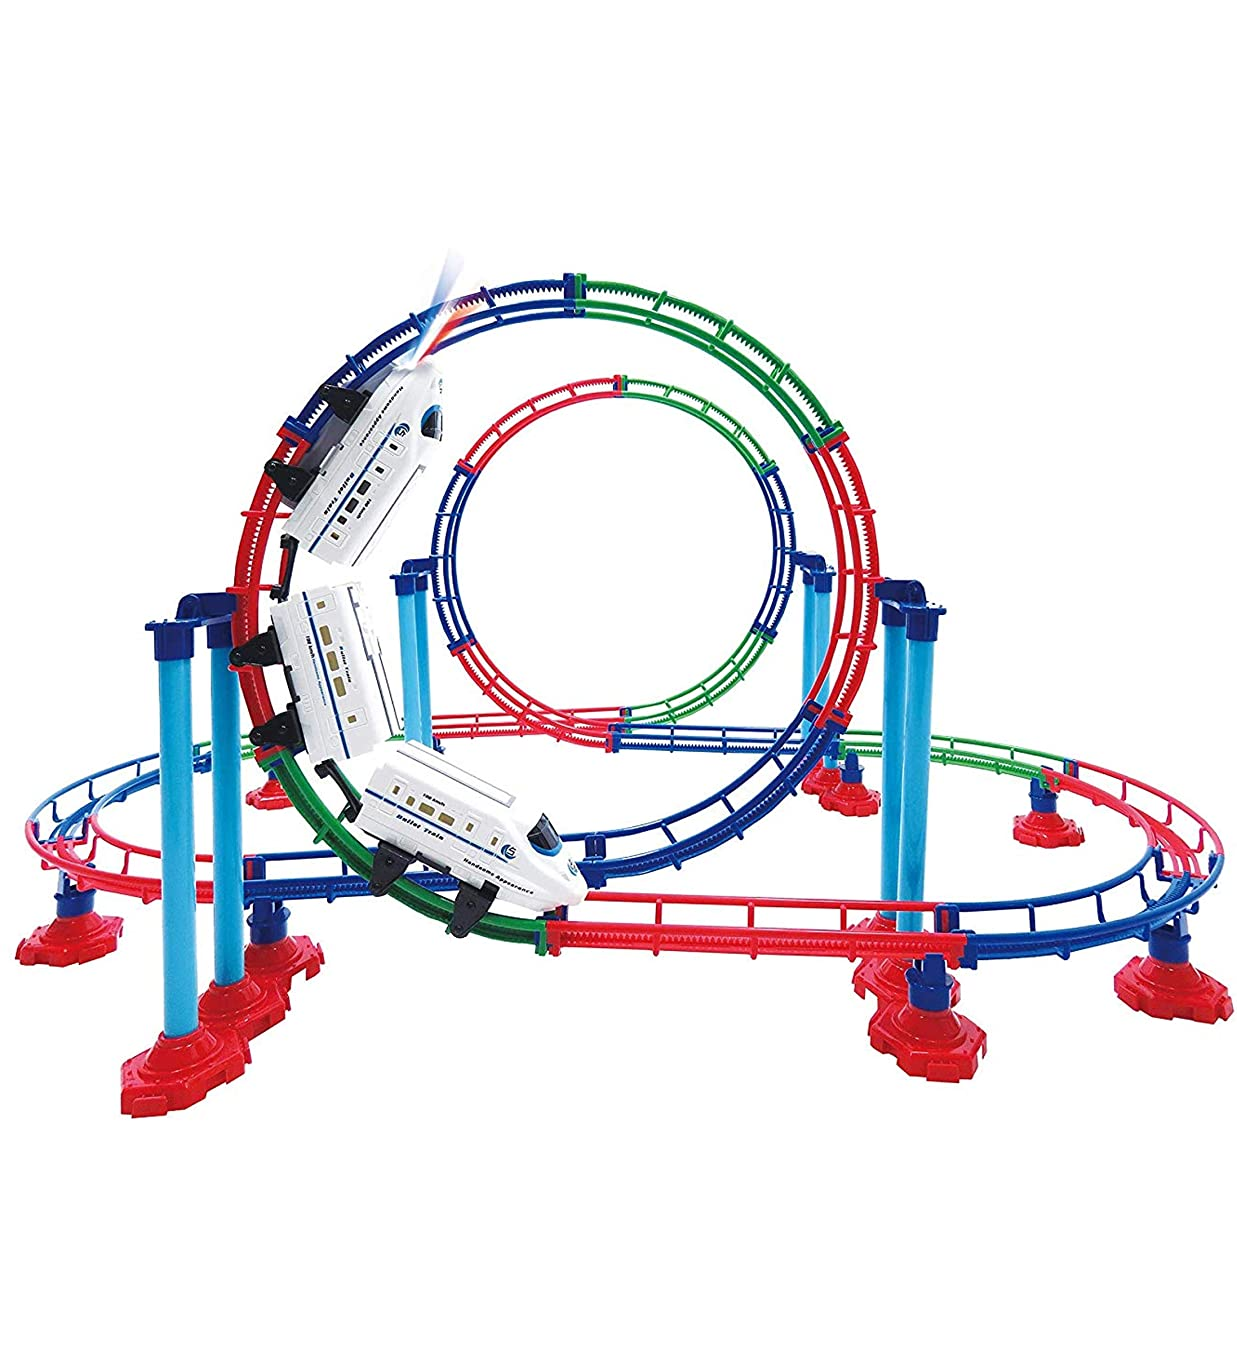 Mozlly Battery Powered High Speed Grand Bullet Roller Coaster Train 112 Pc Loop Race Track - Operated Car Railway Building Play Set Boys, Girls, Kids 15